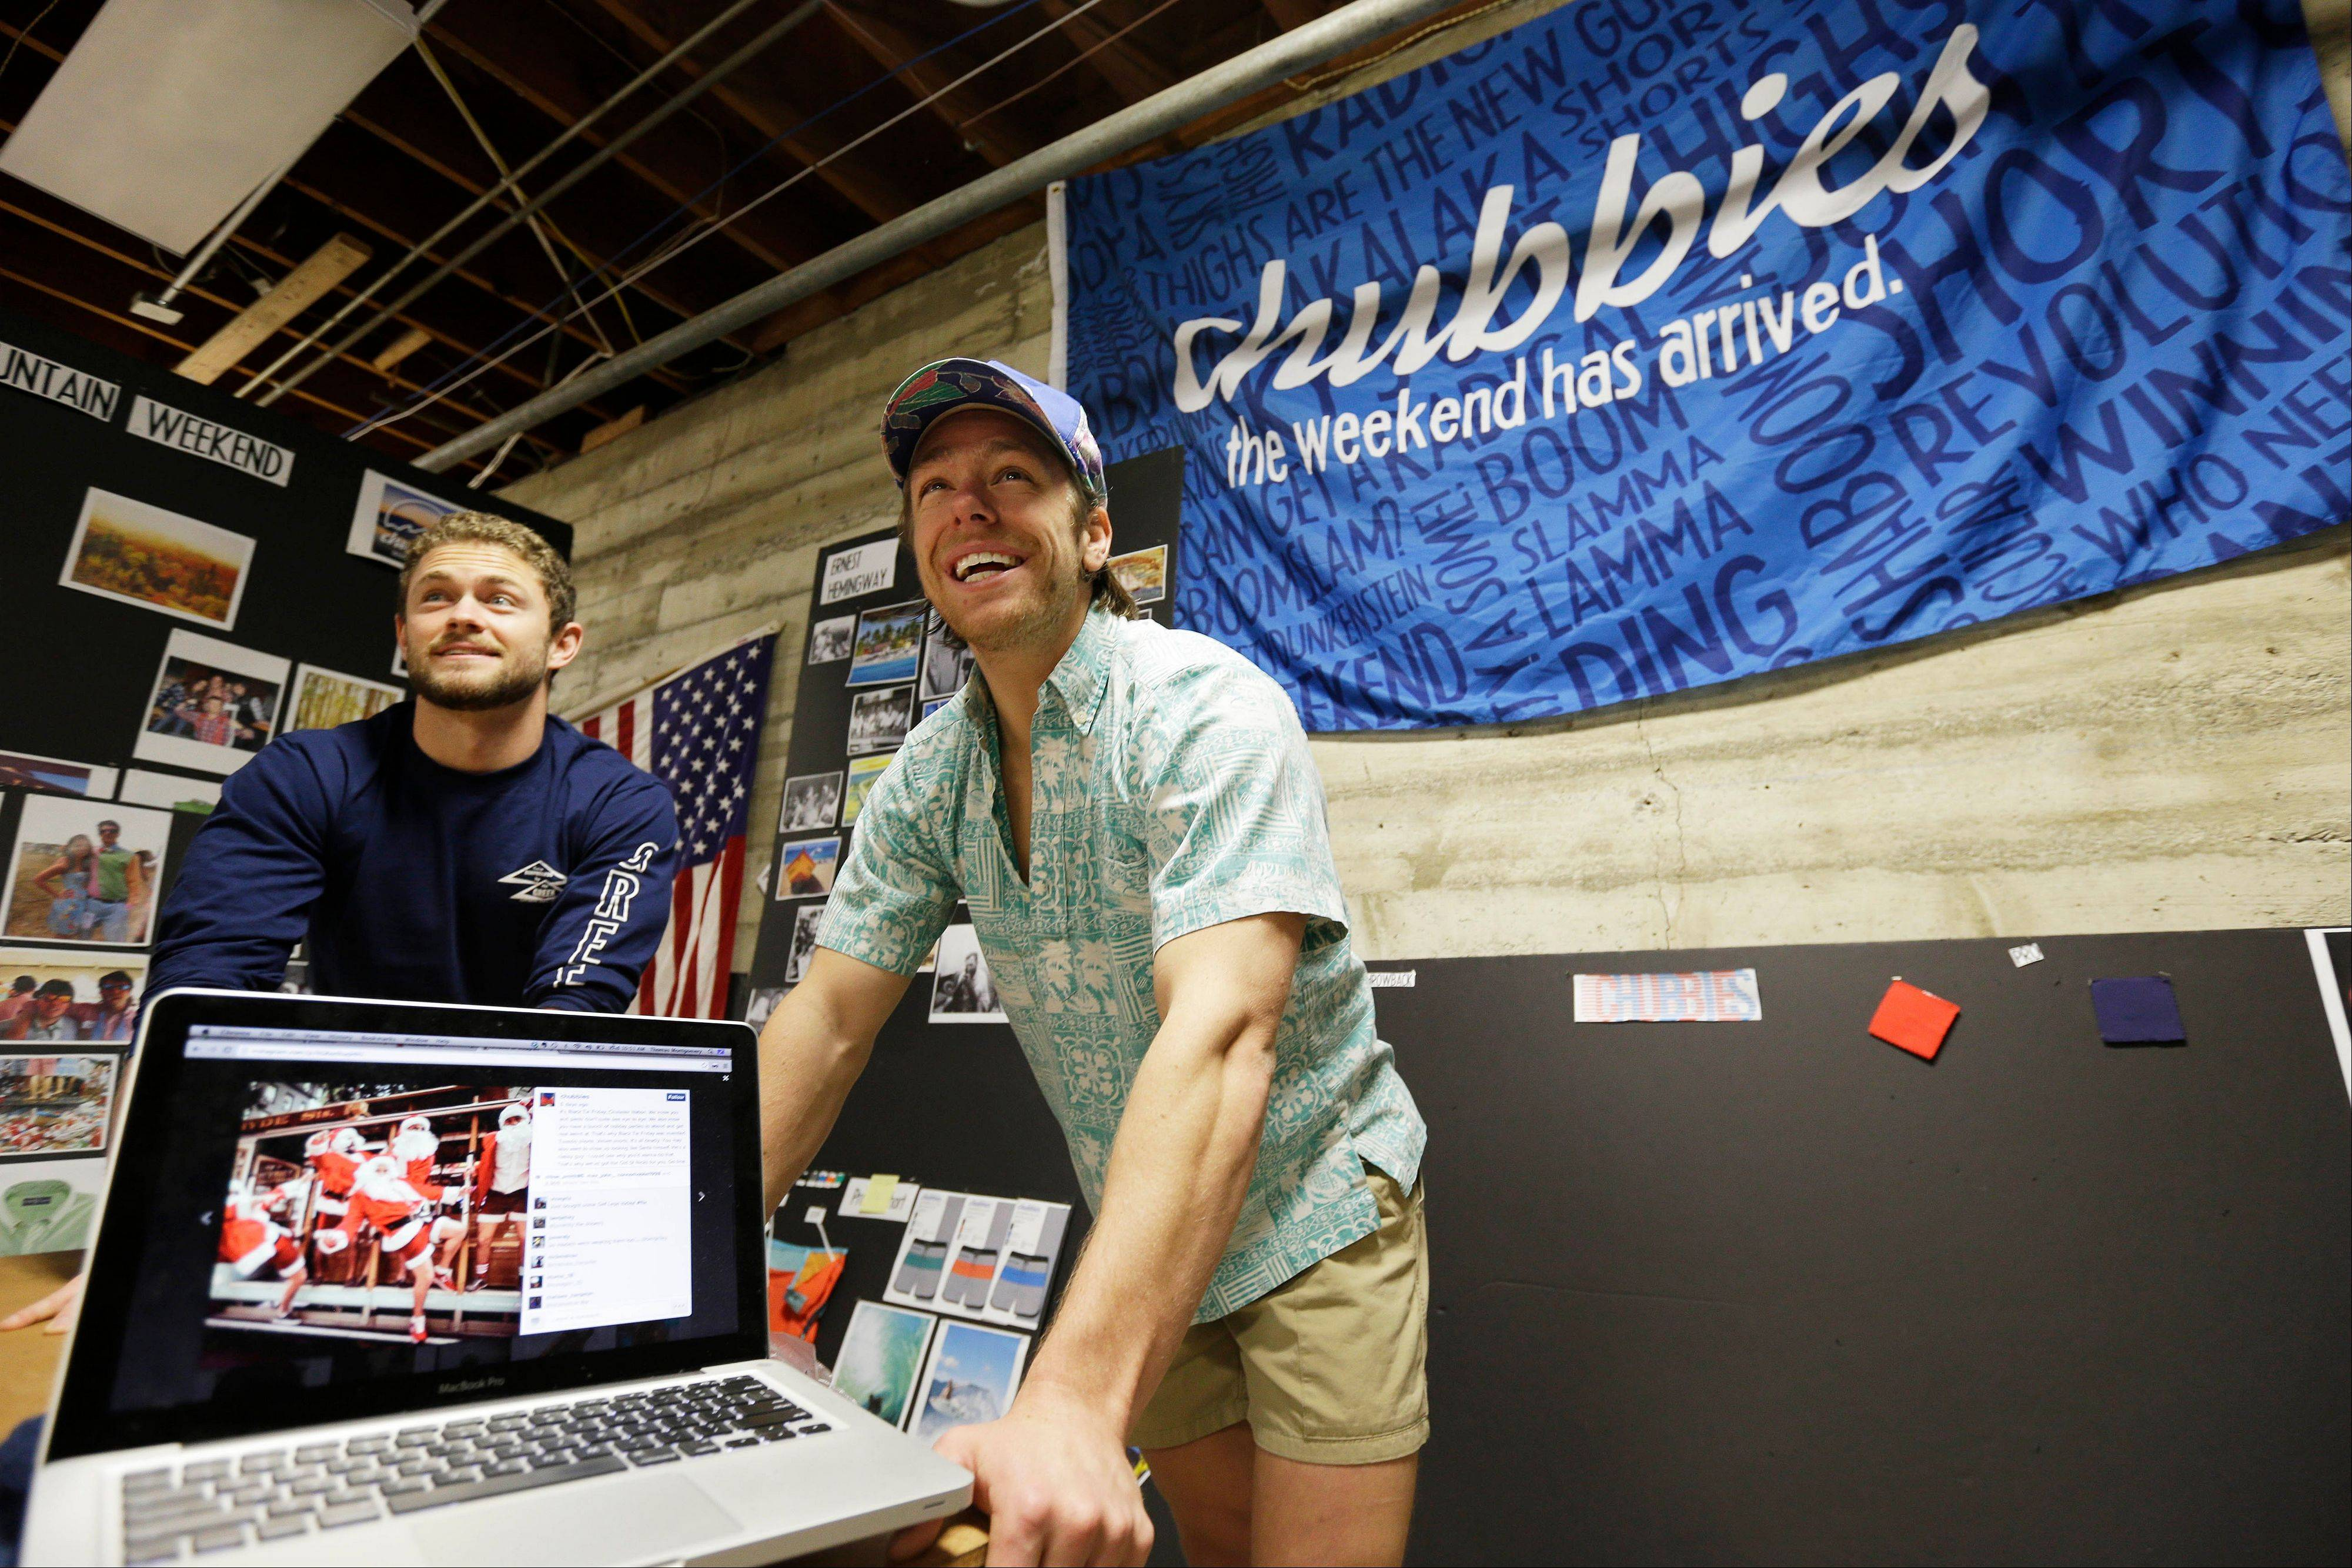 Co-founders Tom Montgomery, left, and Preston Rutherford, right, stand behind a laptop showing an Instagram from a holiday photo shoot at the headquarters of Chubbies Shorts in San Francisco. Chubbies uses Facebook for marketing tools like videos that users will share with their friends. It uses Twitter for conversations with customers, and posts photos on Instagram to create buzz about their products.